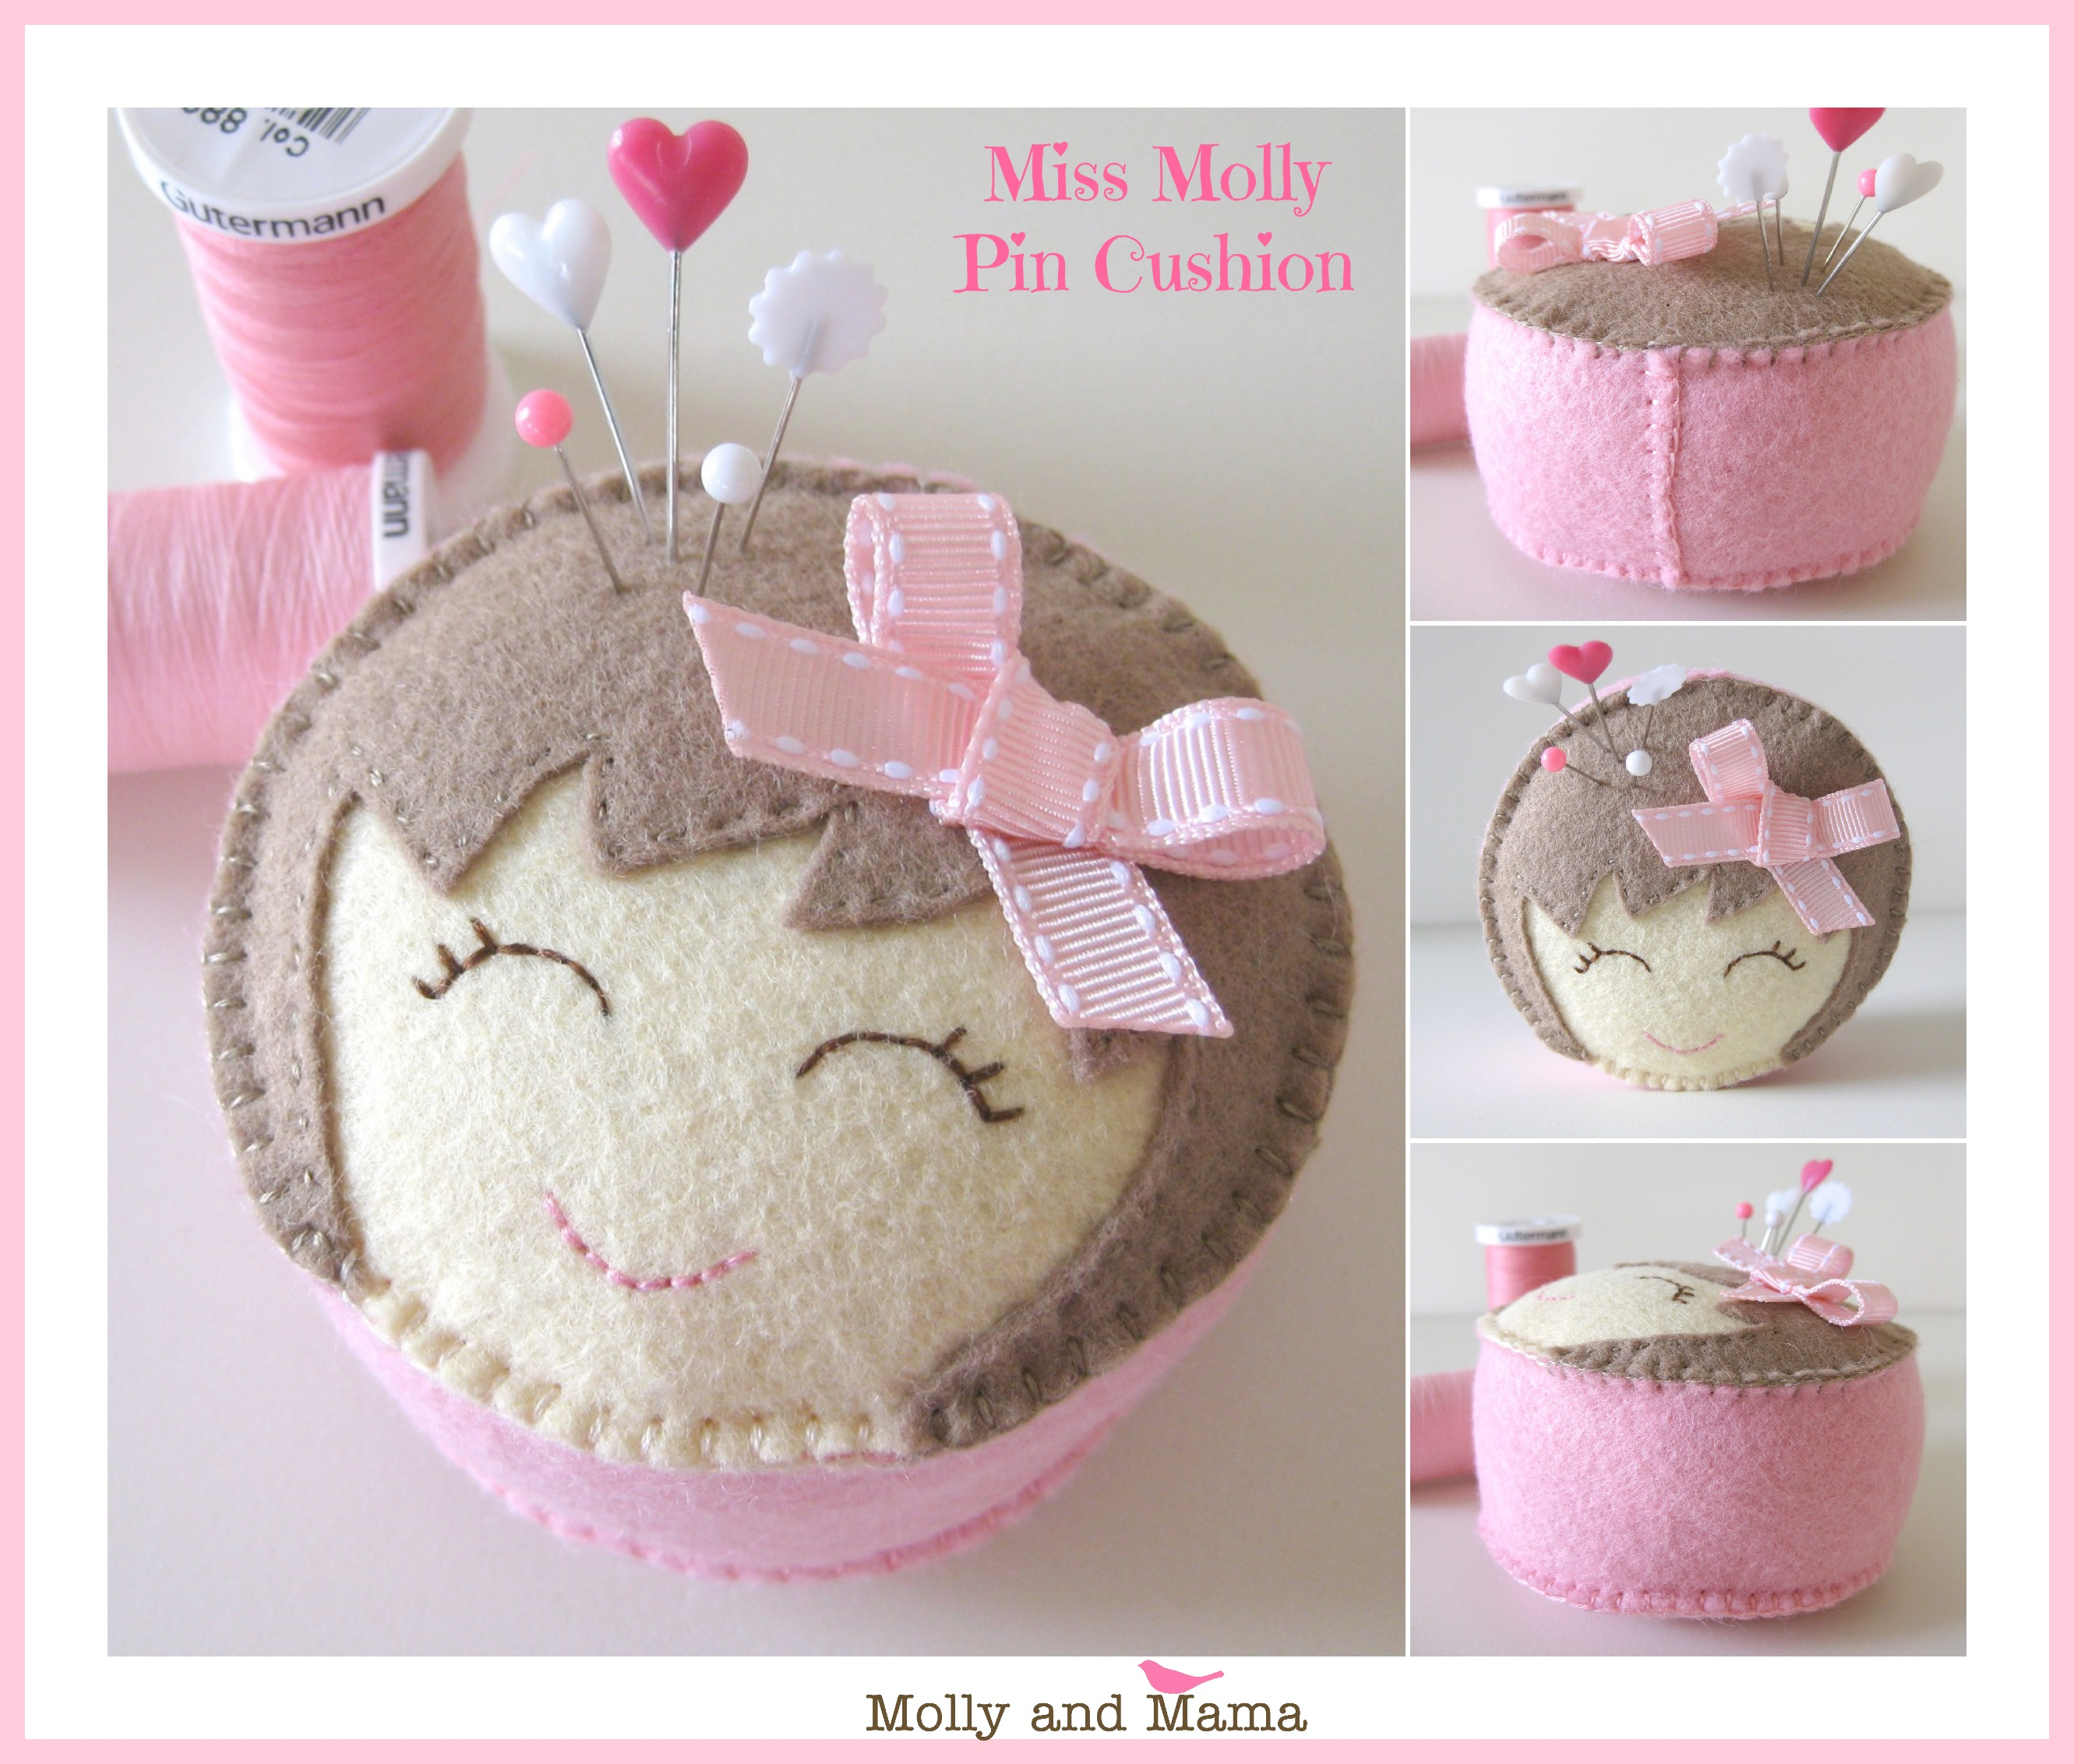 Miss Molly pin cushion.jpg.jpg